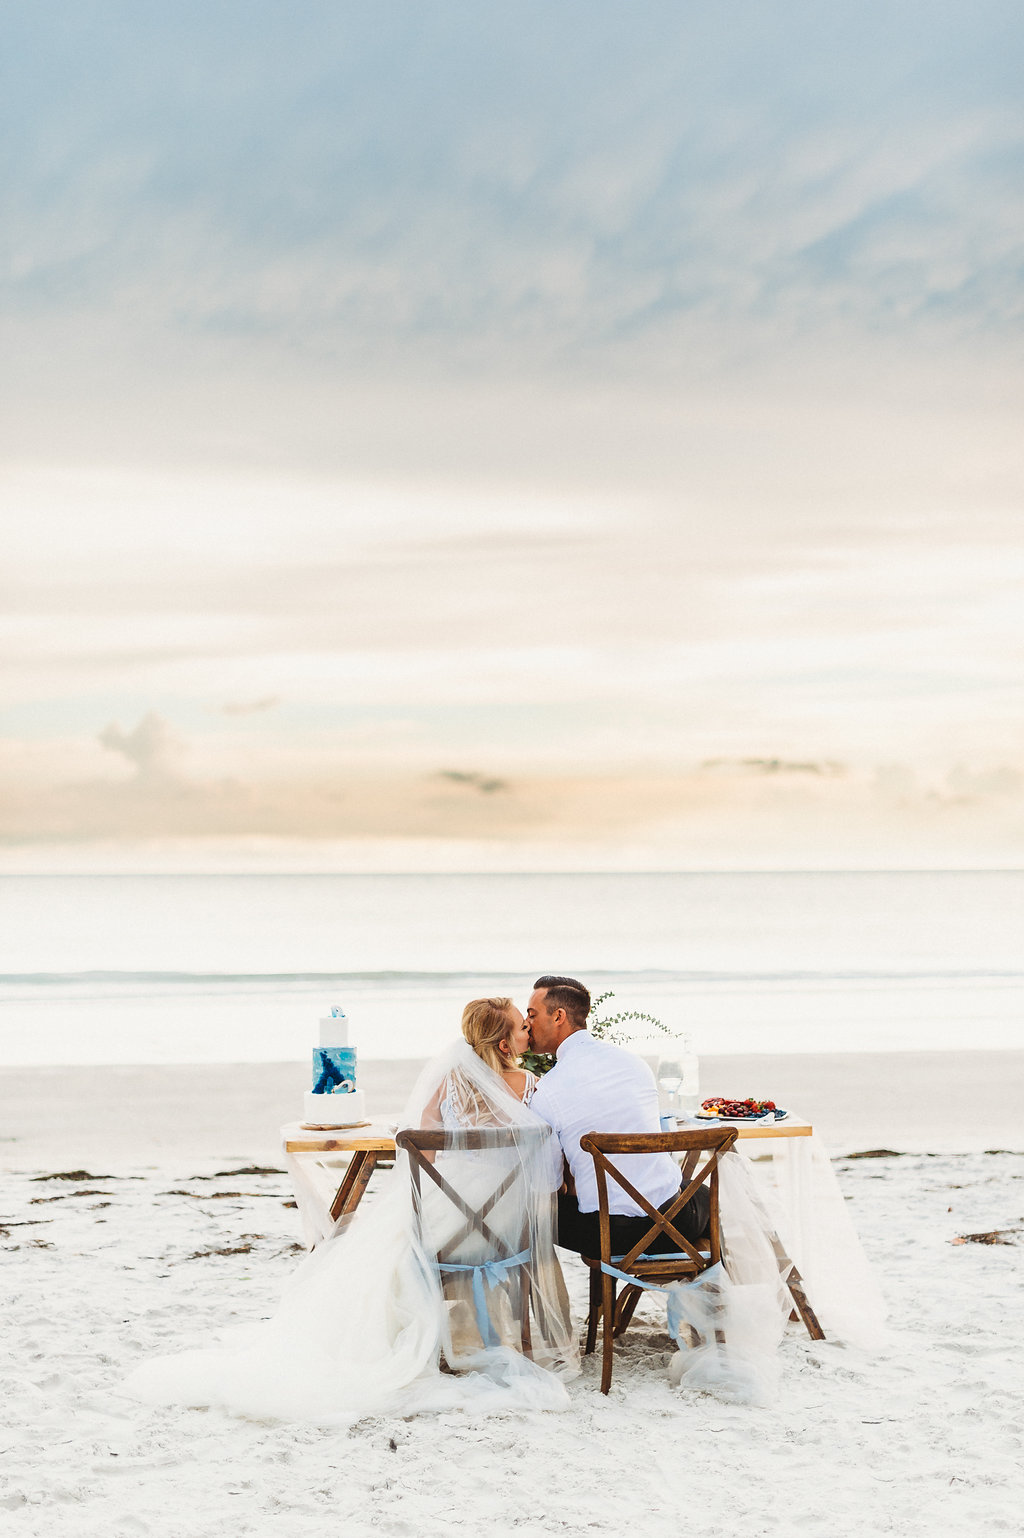 Waterfront, Sandy White Redington Beach Wedding Reception Bride and Groom Portrait in Wooden Crossback Chairs with Tulle